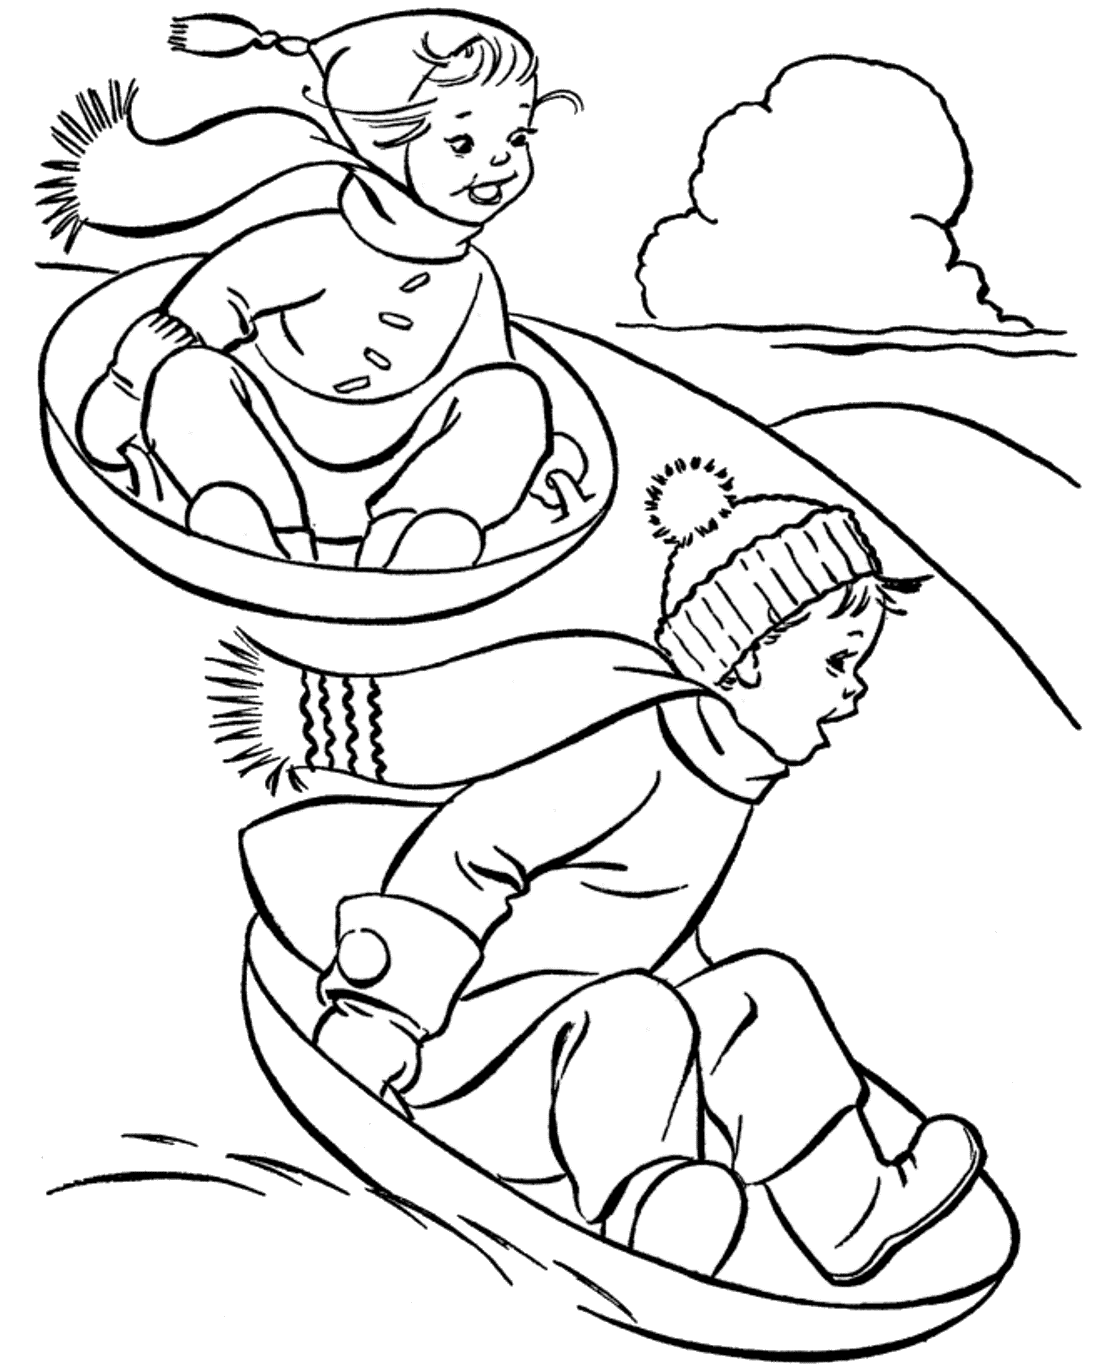 exercise with friends in winter coloring pages for kids printable winter sports coloring pages for kids